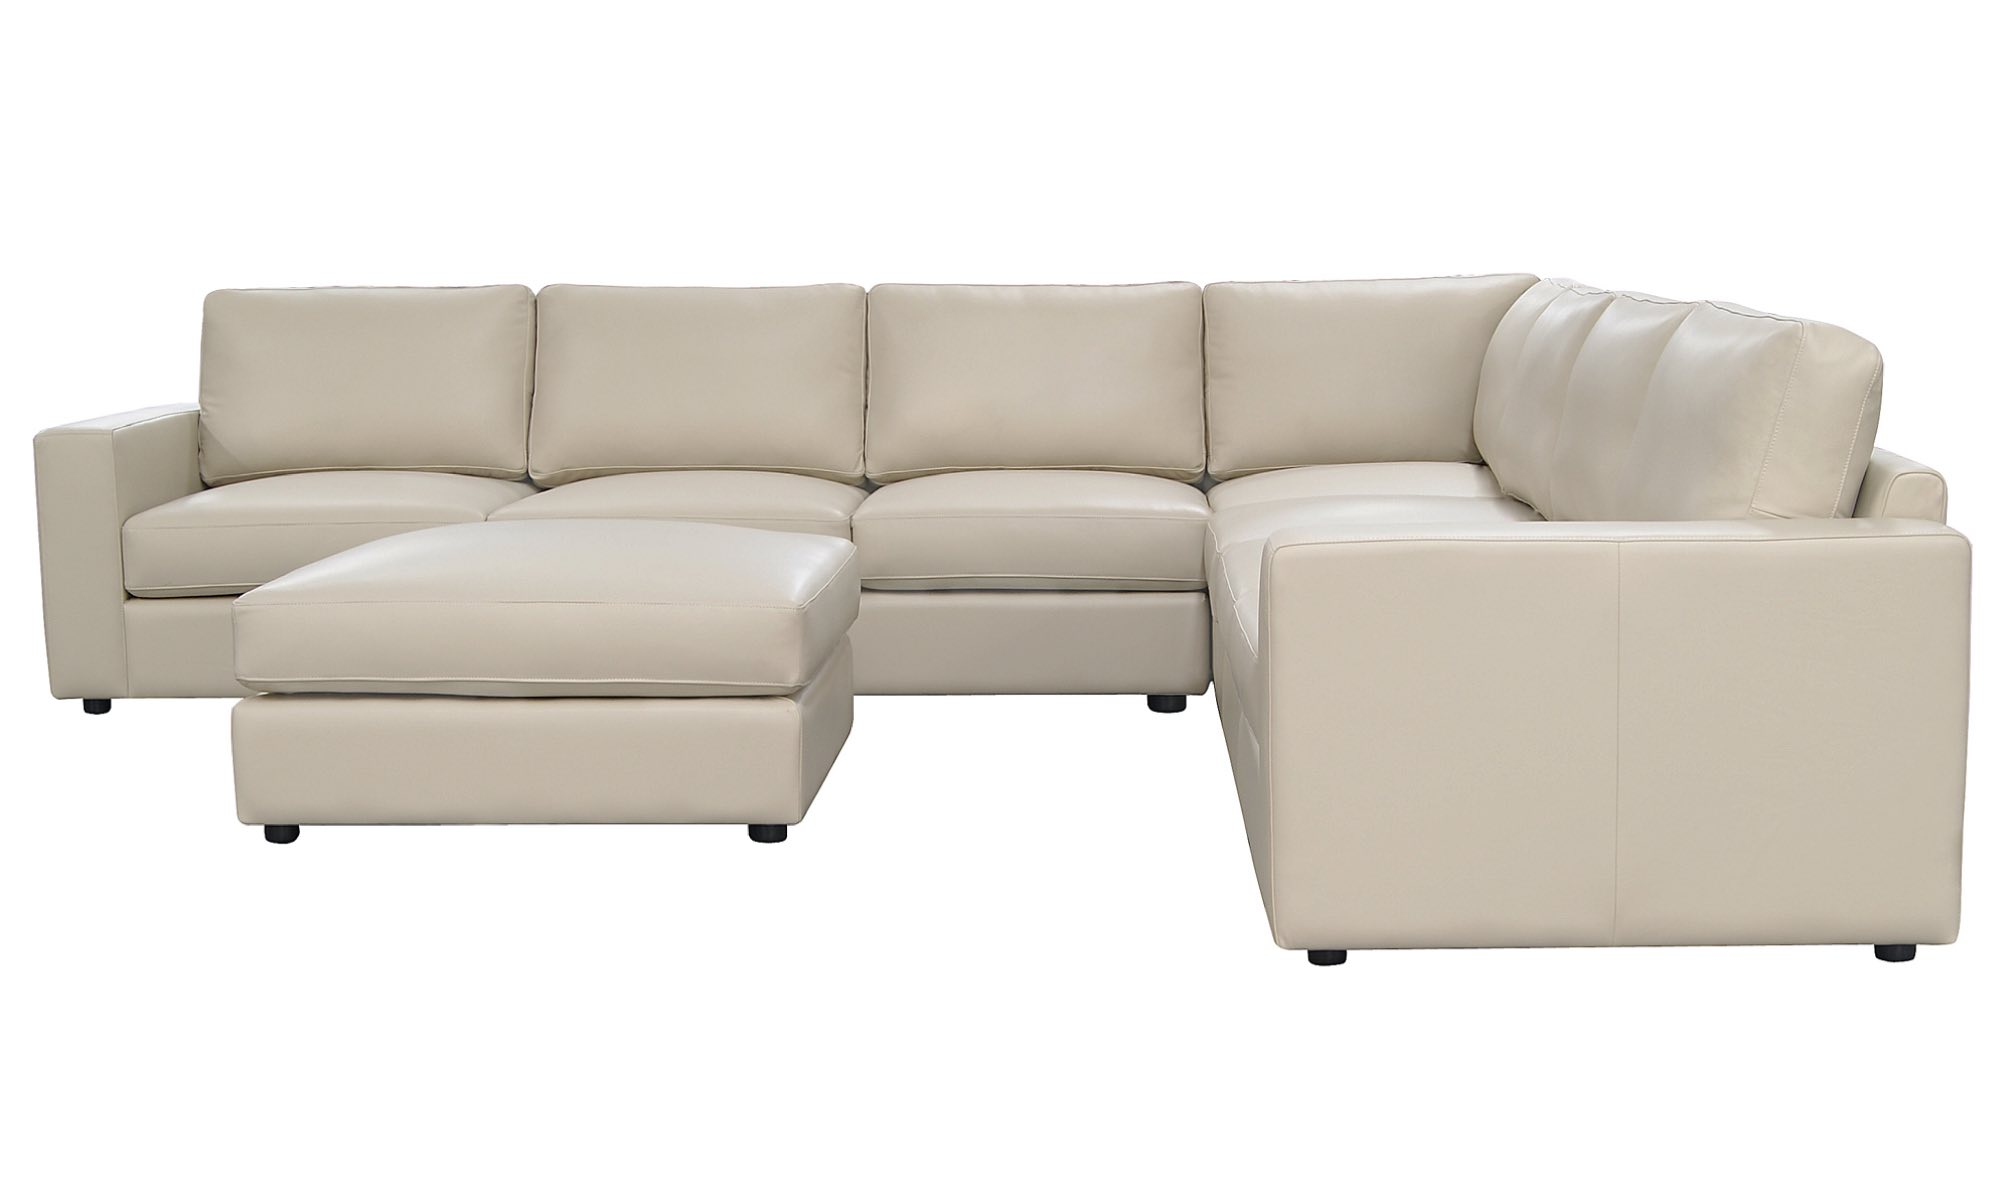 Park Berkowitz Furniture - Modular Sofa Geelong